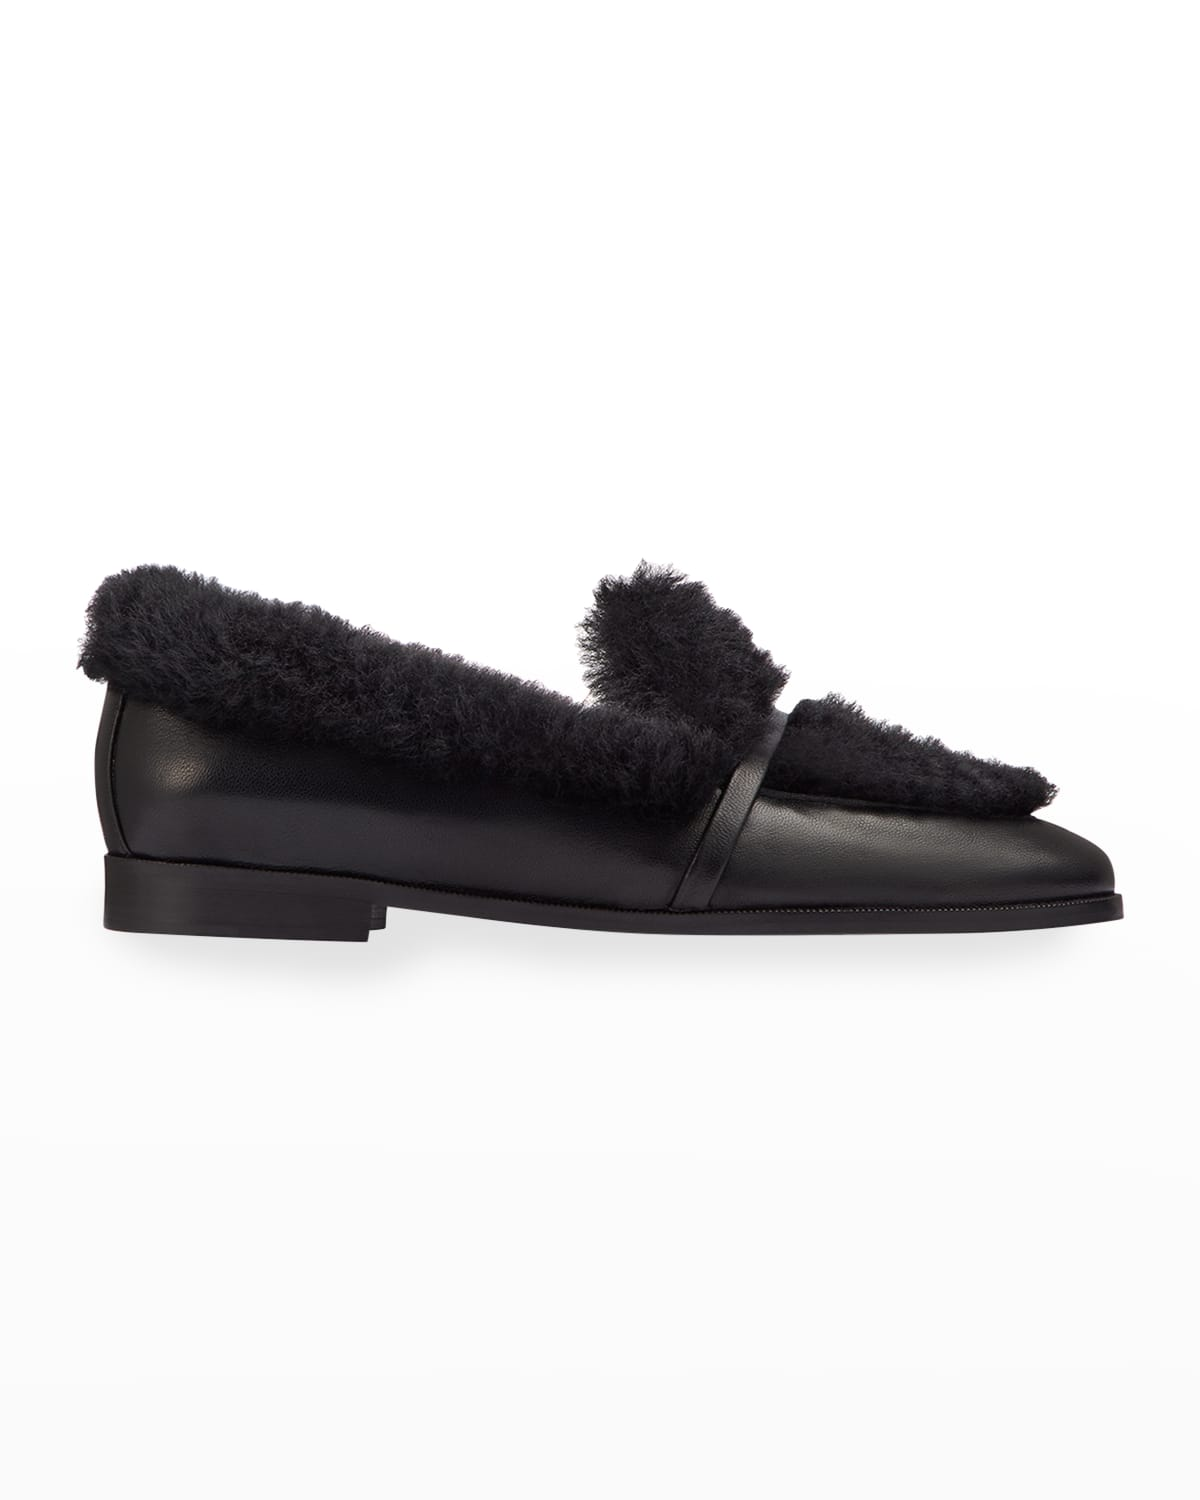 Lia Shearling Flat Loafers